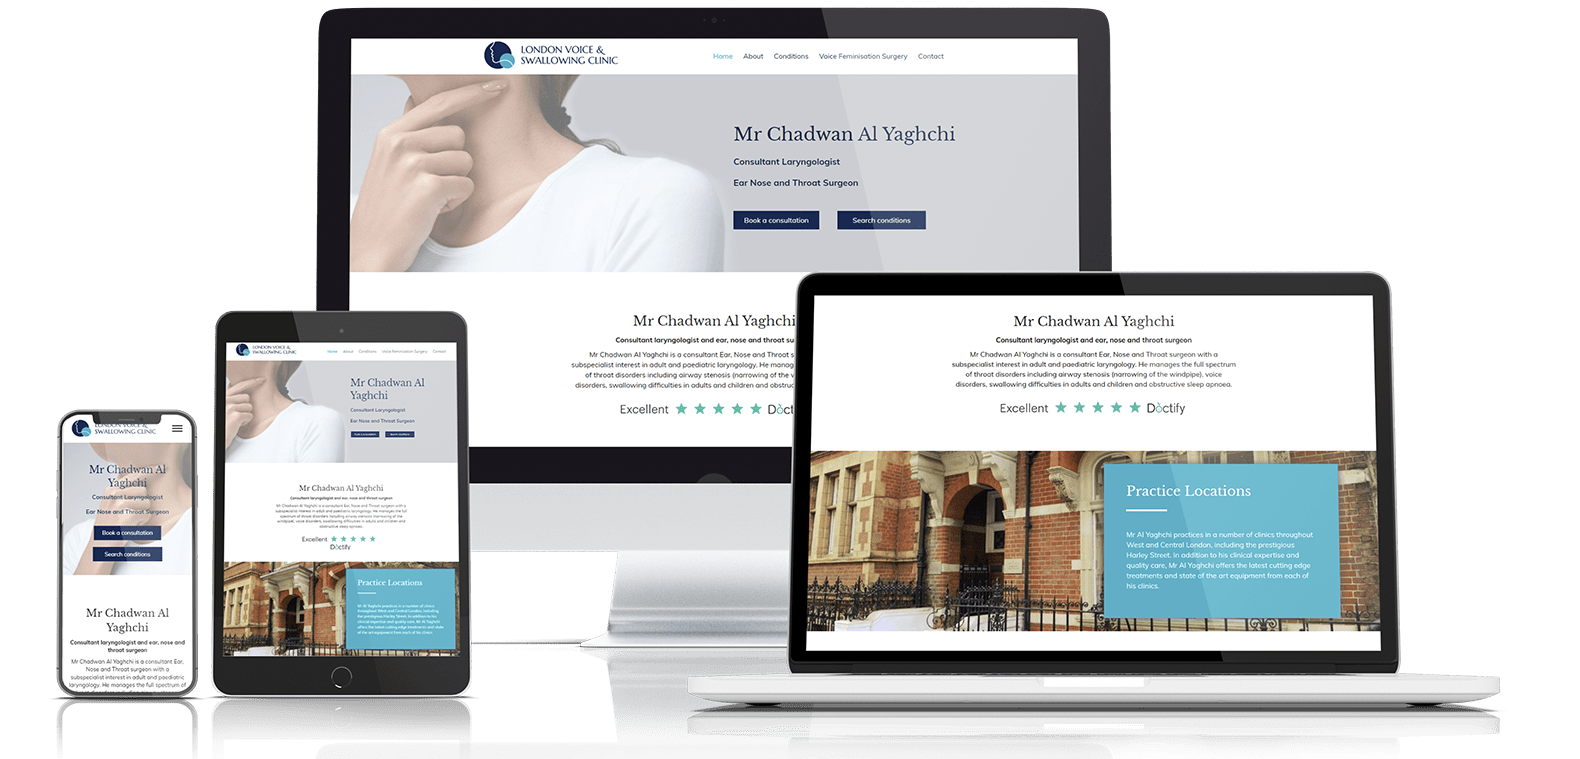 Website design example for LVS clinic